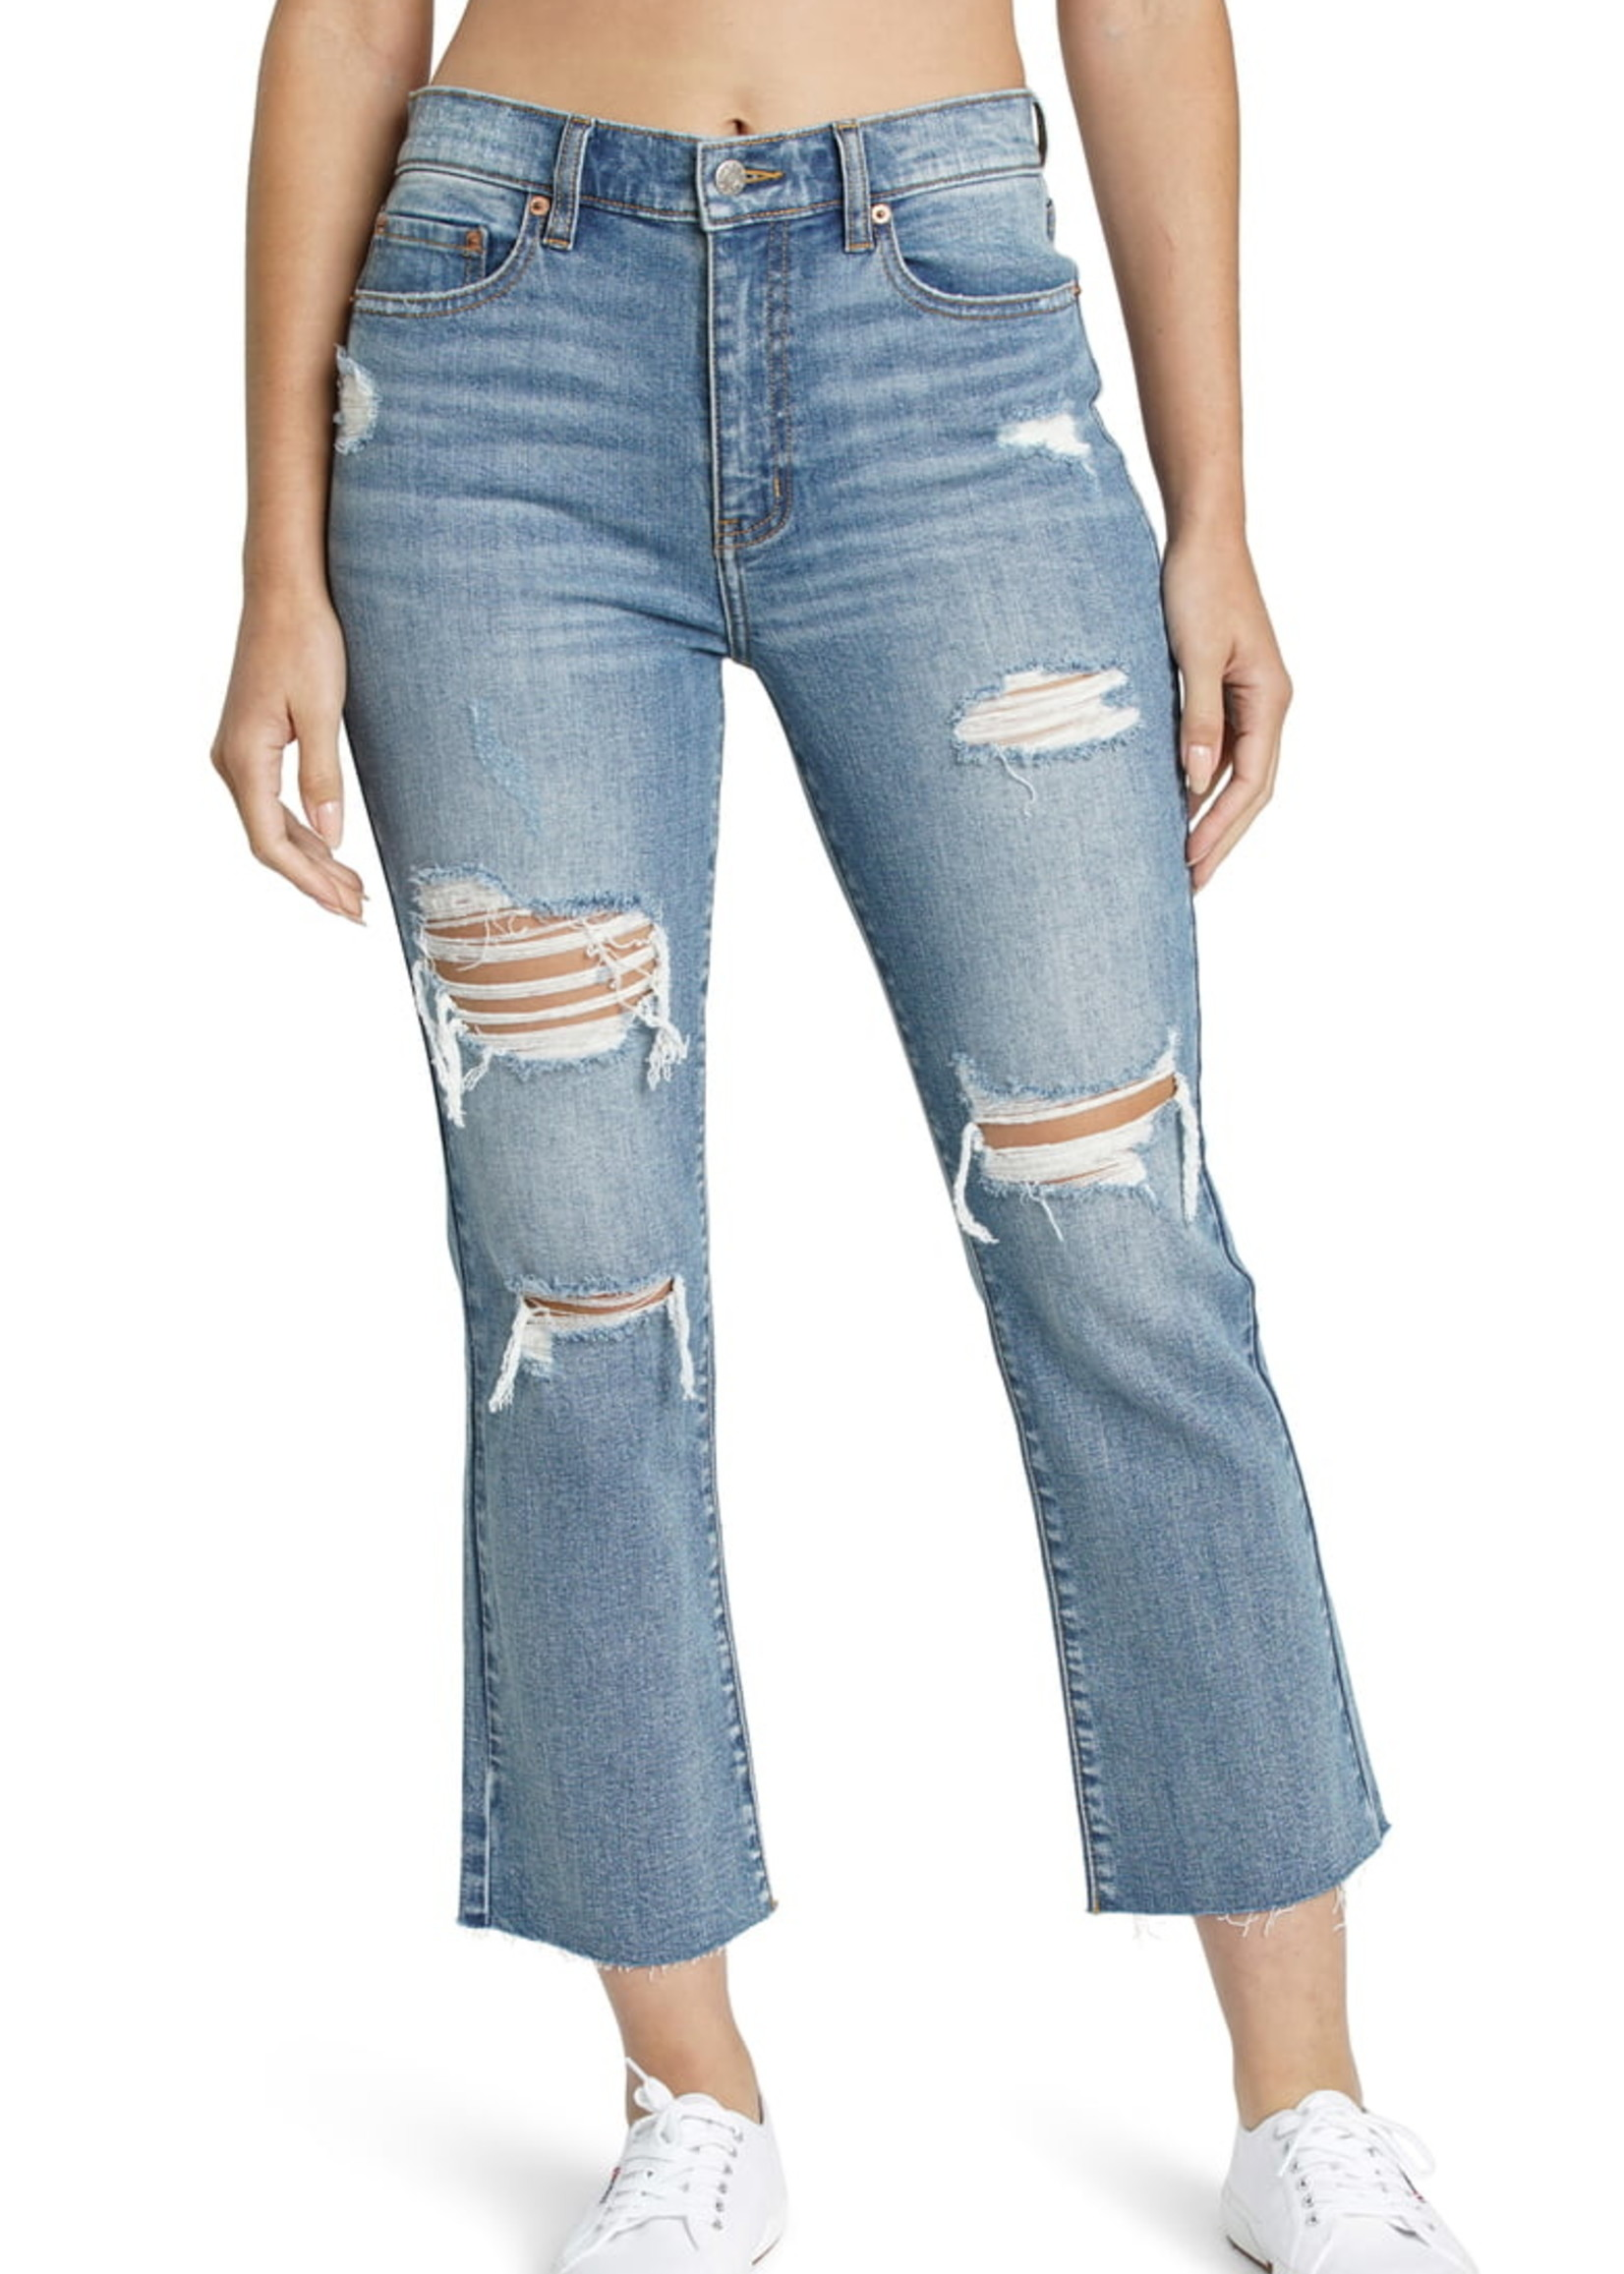 Daze Shy Girl High Rise Crop Flare - Hot Spot